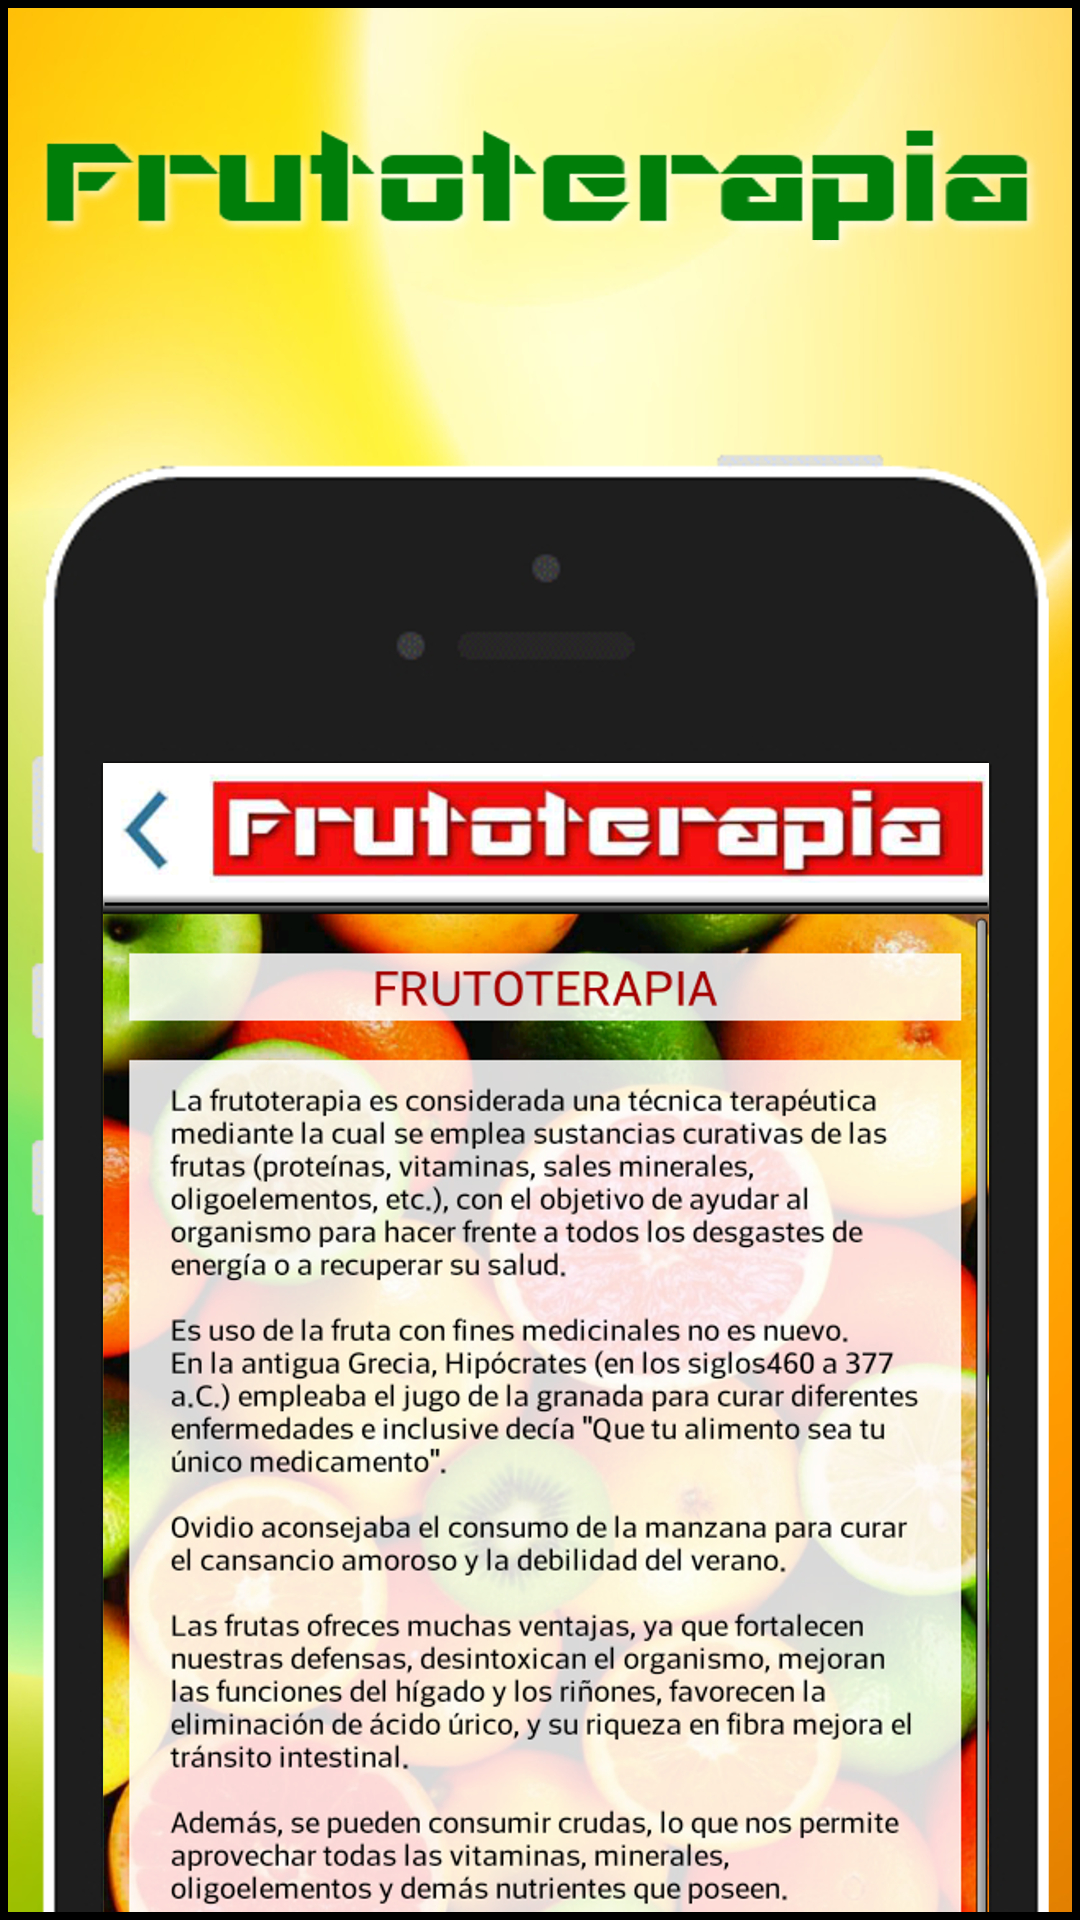 Amazon.com: Frutoterapia: Appstore for Android